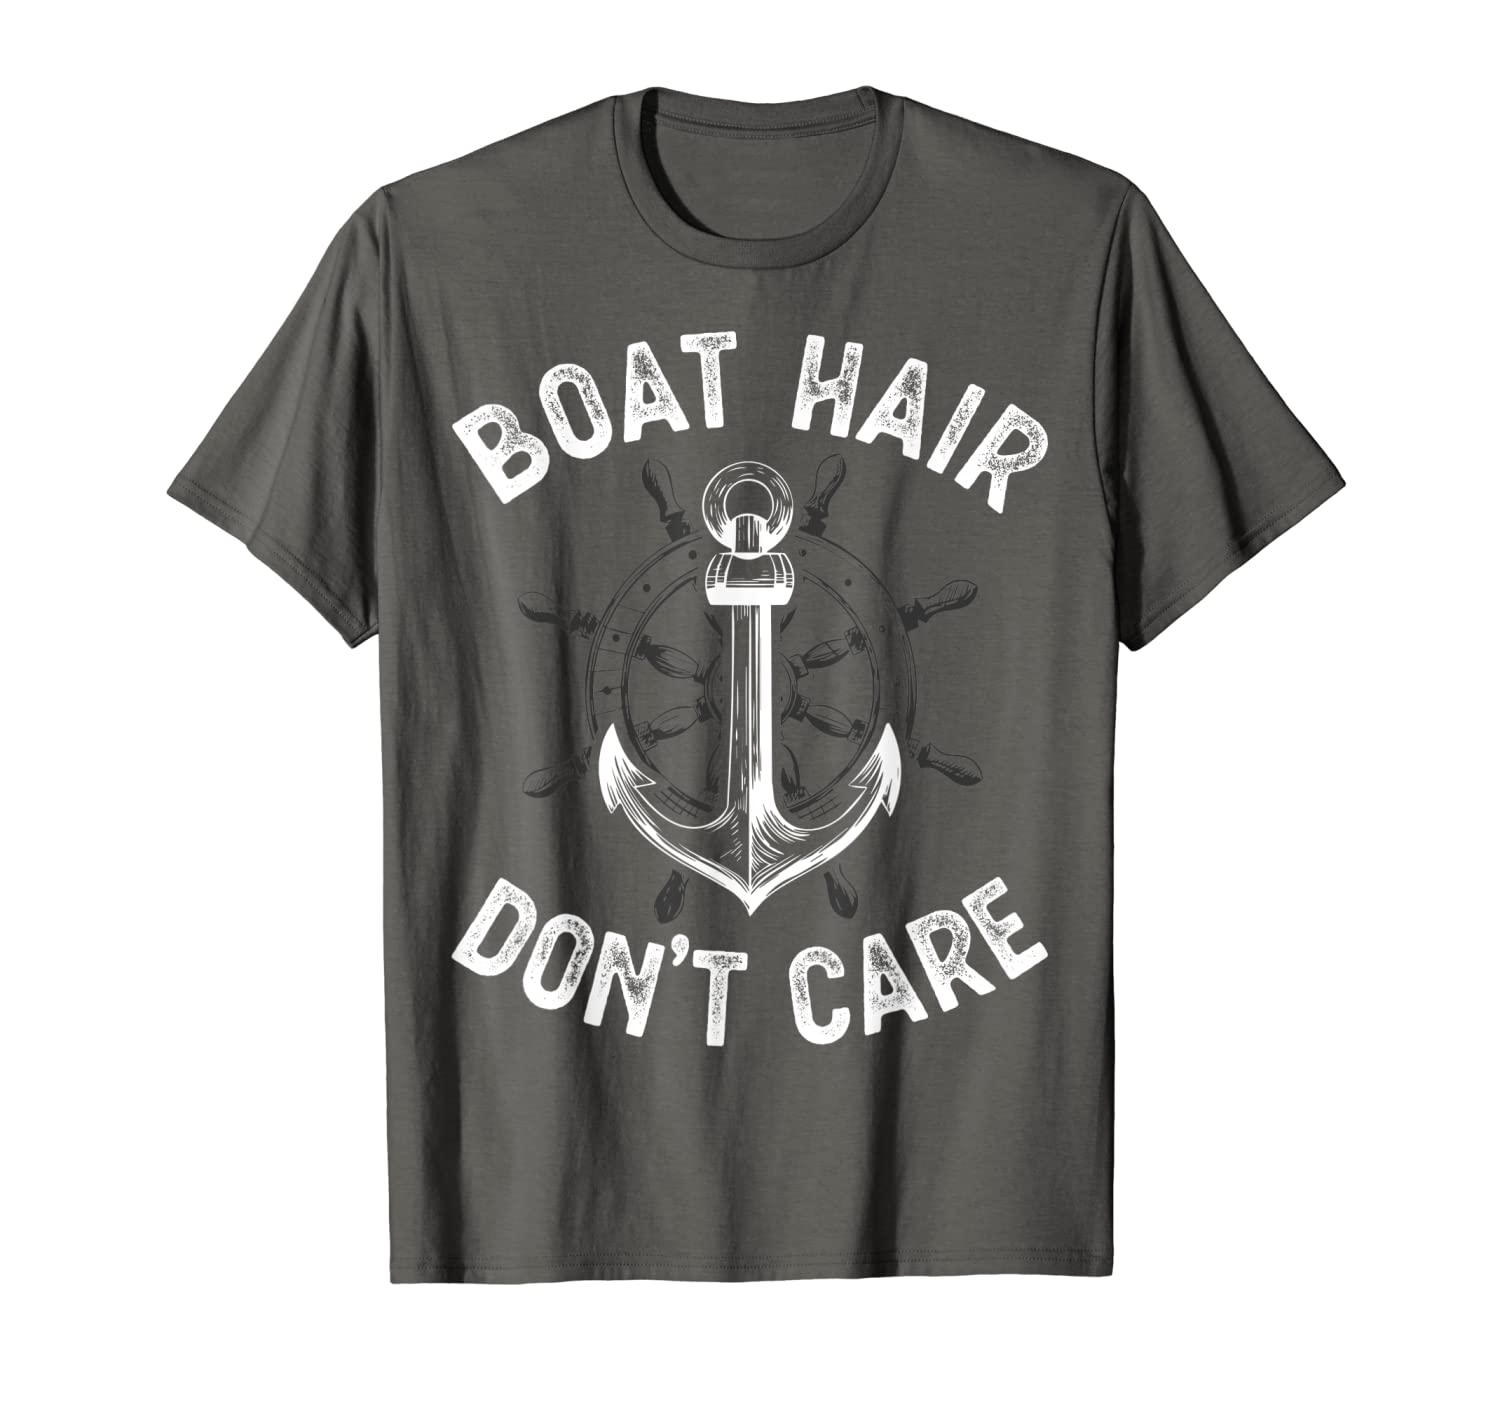 Boat Hair Don't Care T Shirt Girls Women Funny Boating Gifts T-Shirt